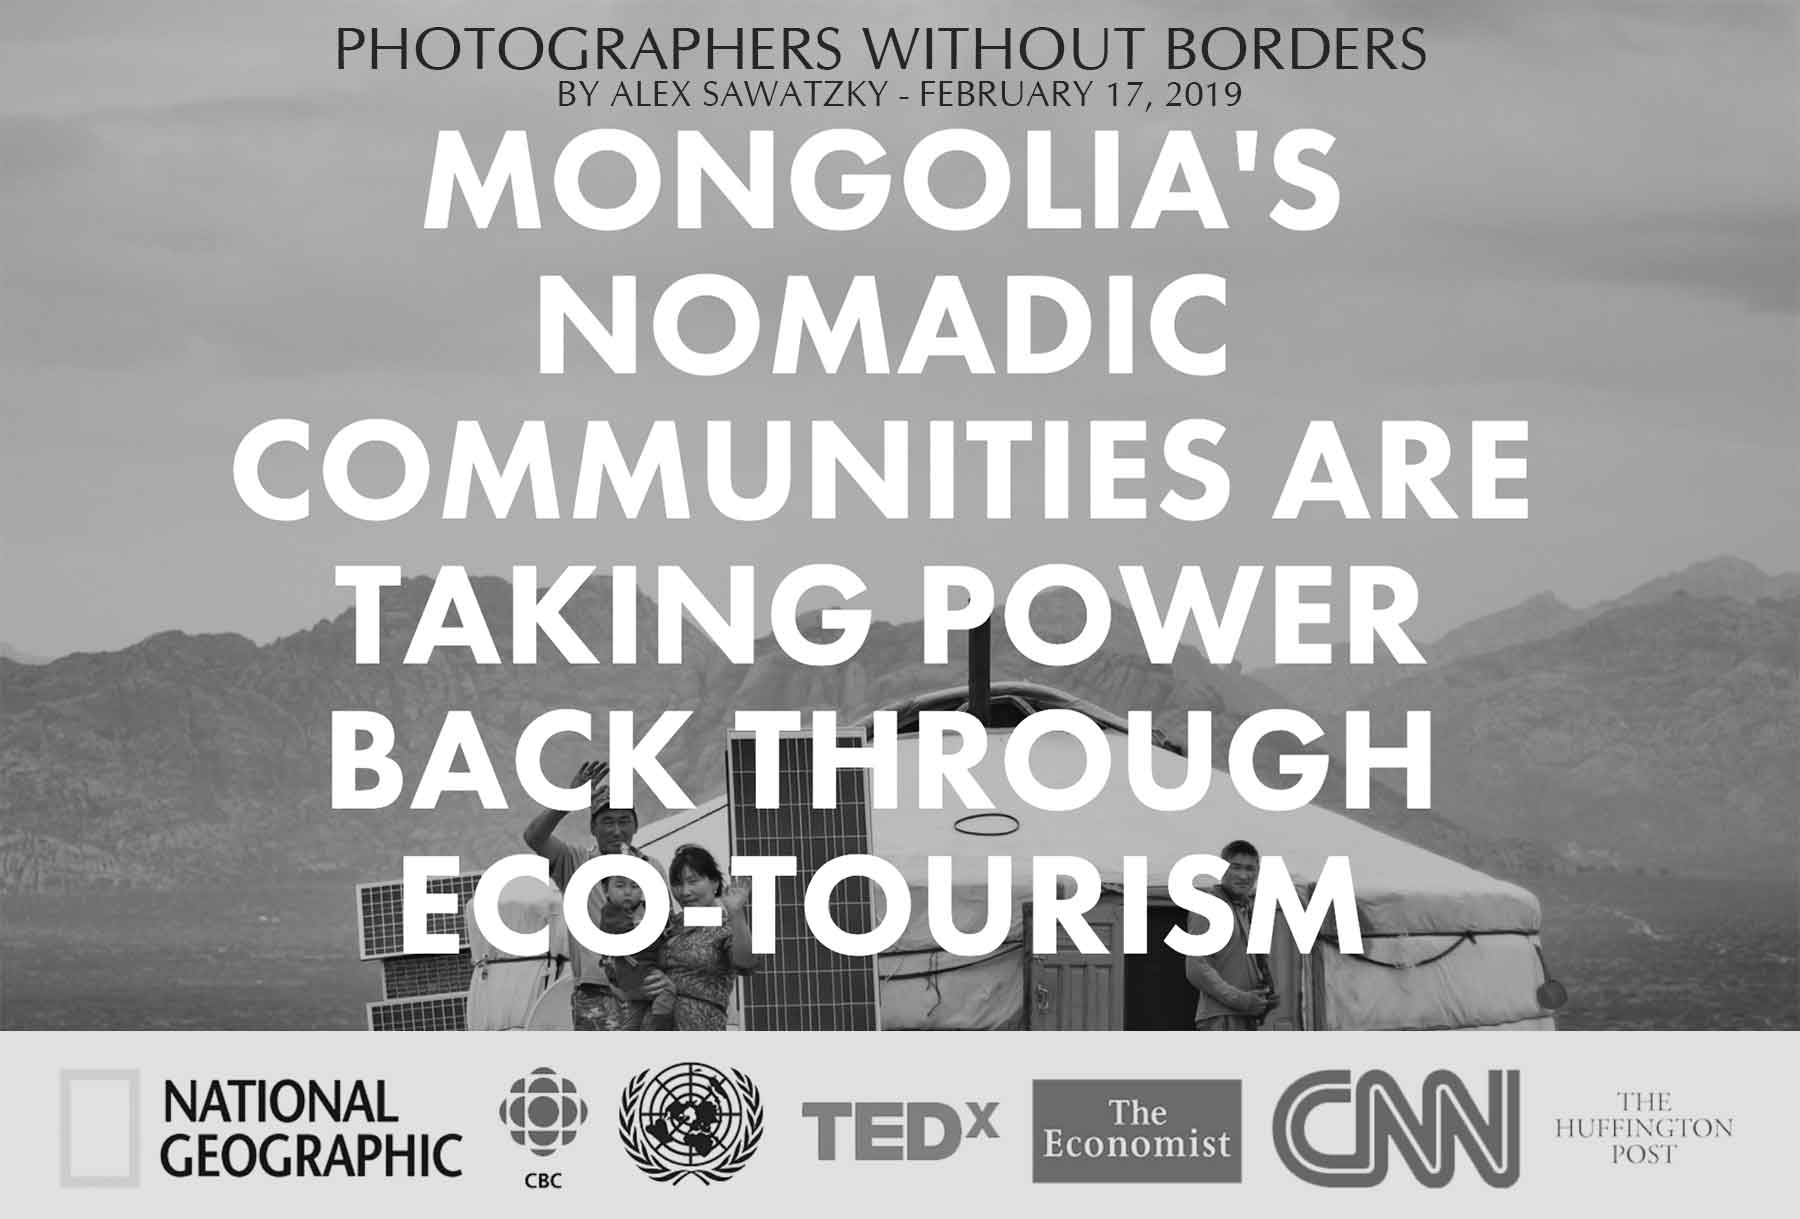 Photographers WITHOUT Borders - GER to GER Article